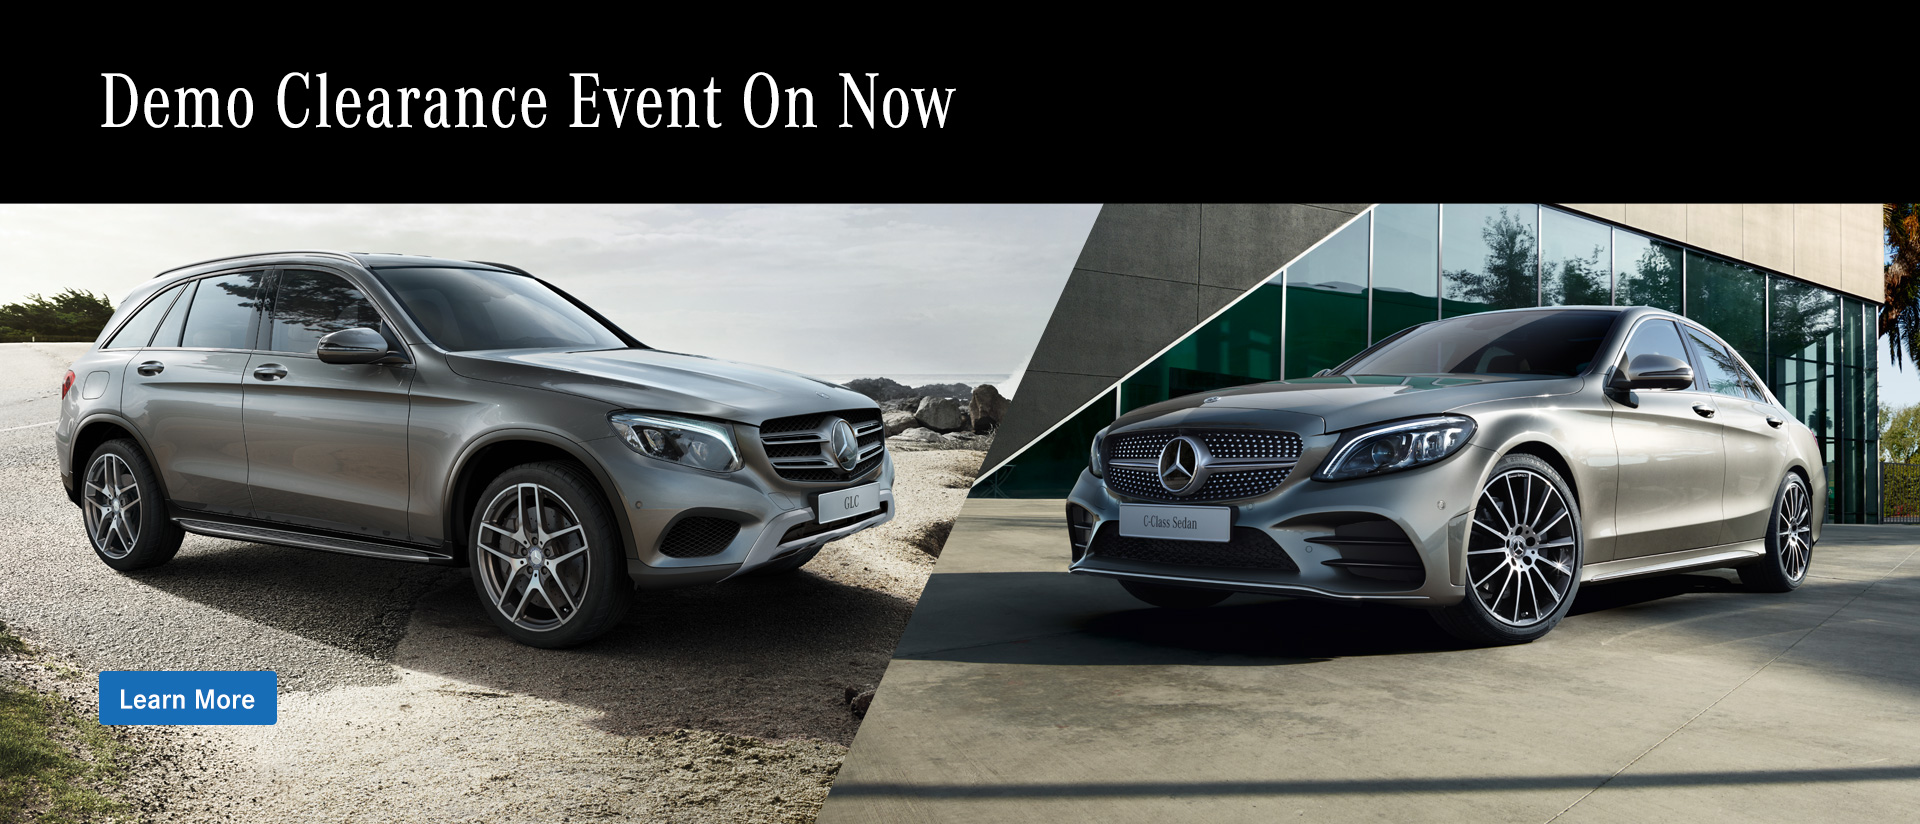 Mercedes-Benz Surrey | Sales, Service, & Financing in Surrey, BC